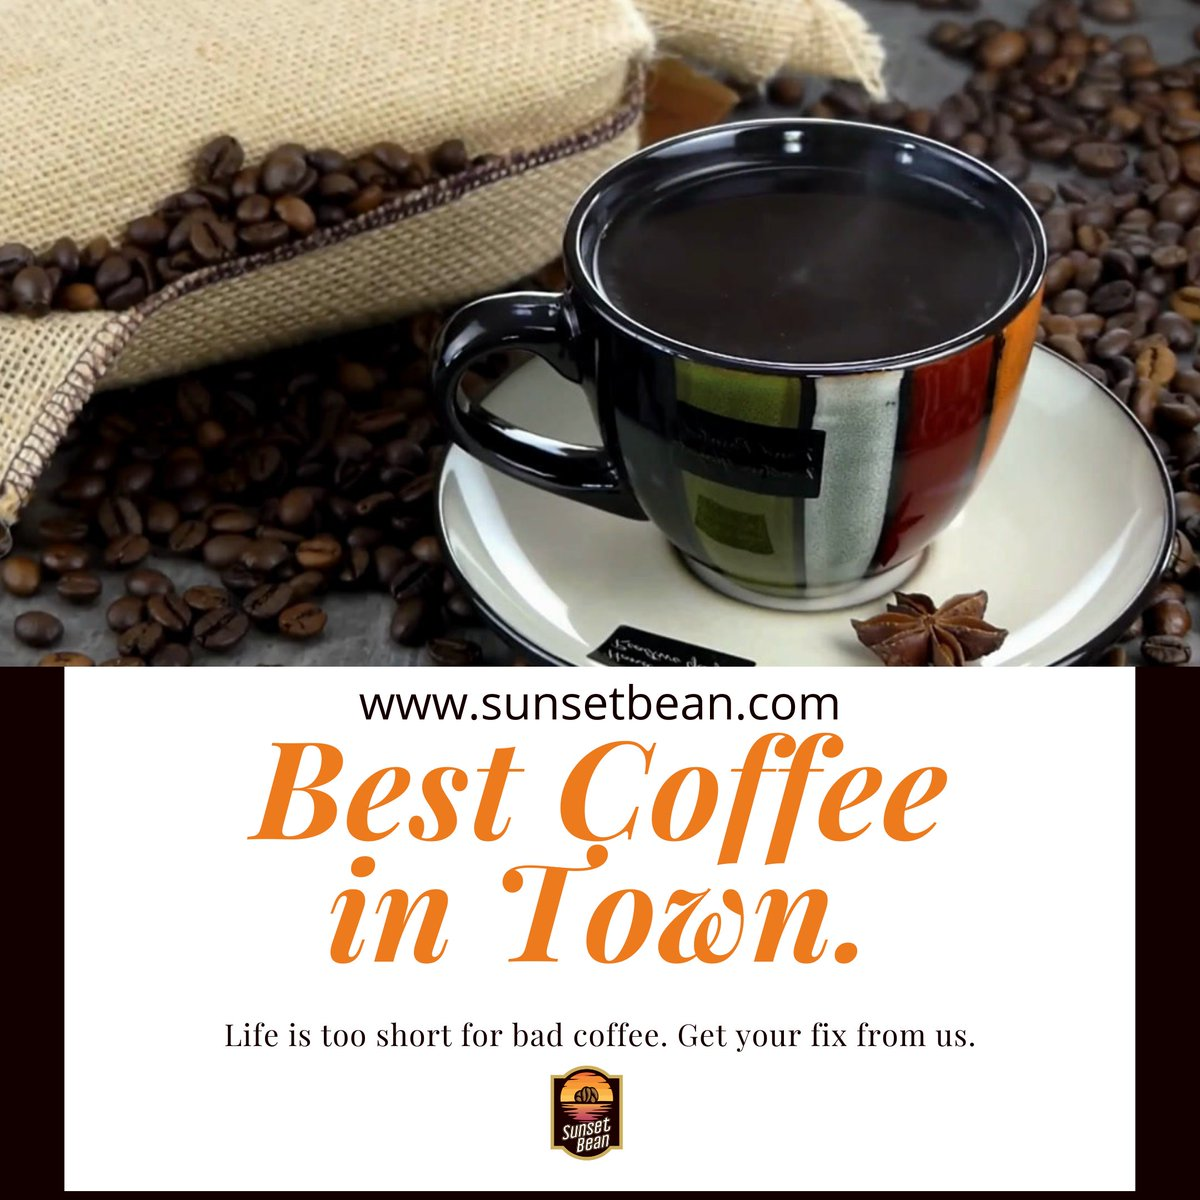 Life is too short for bad coffee. Get your fix from us. Shop Now : https://www.sunsetbean.com/collections/coffee… . . #Sunsetbean #Sunsetbeancoffee #coffeebeans #thecoffeecompany #SunsetMugs #herbaltea #Premiumquality #bestcoffee #coffeelover #coffeereducesdepression #depression #SupportBlackBusinesspic.twitter.com/XmdQhKgtjU